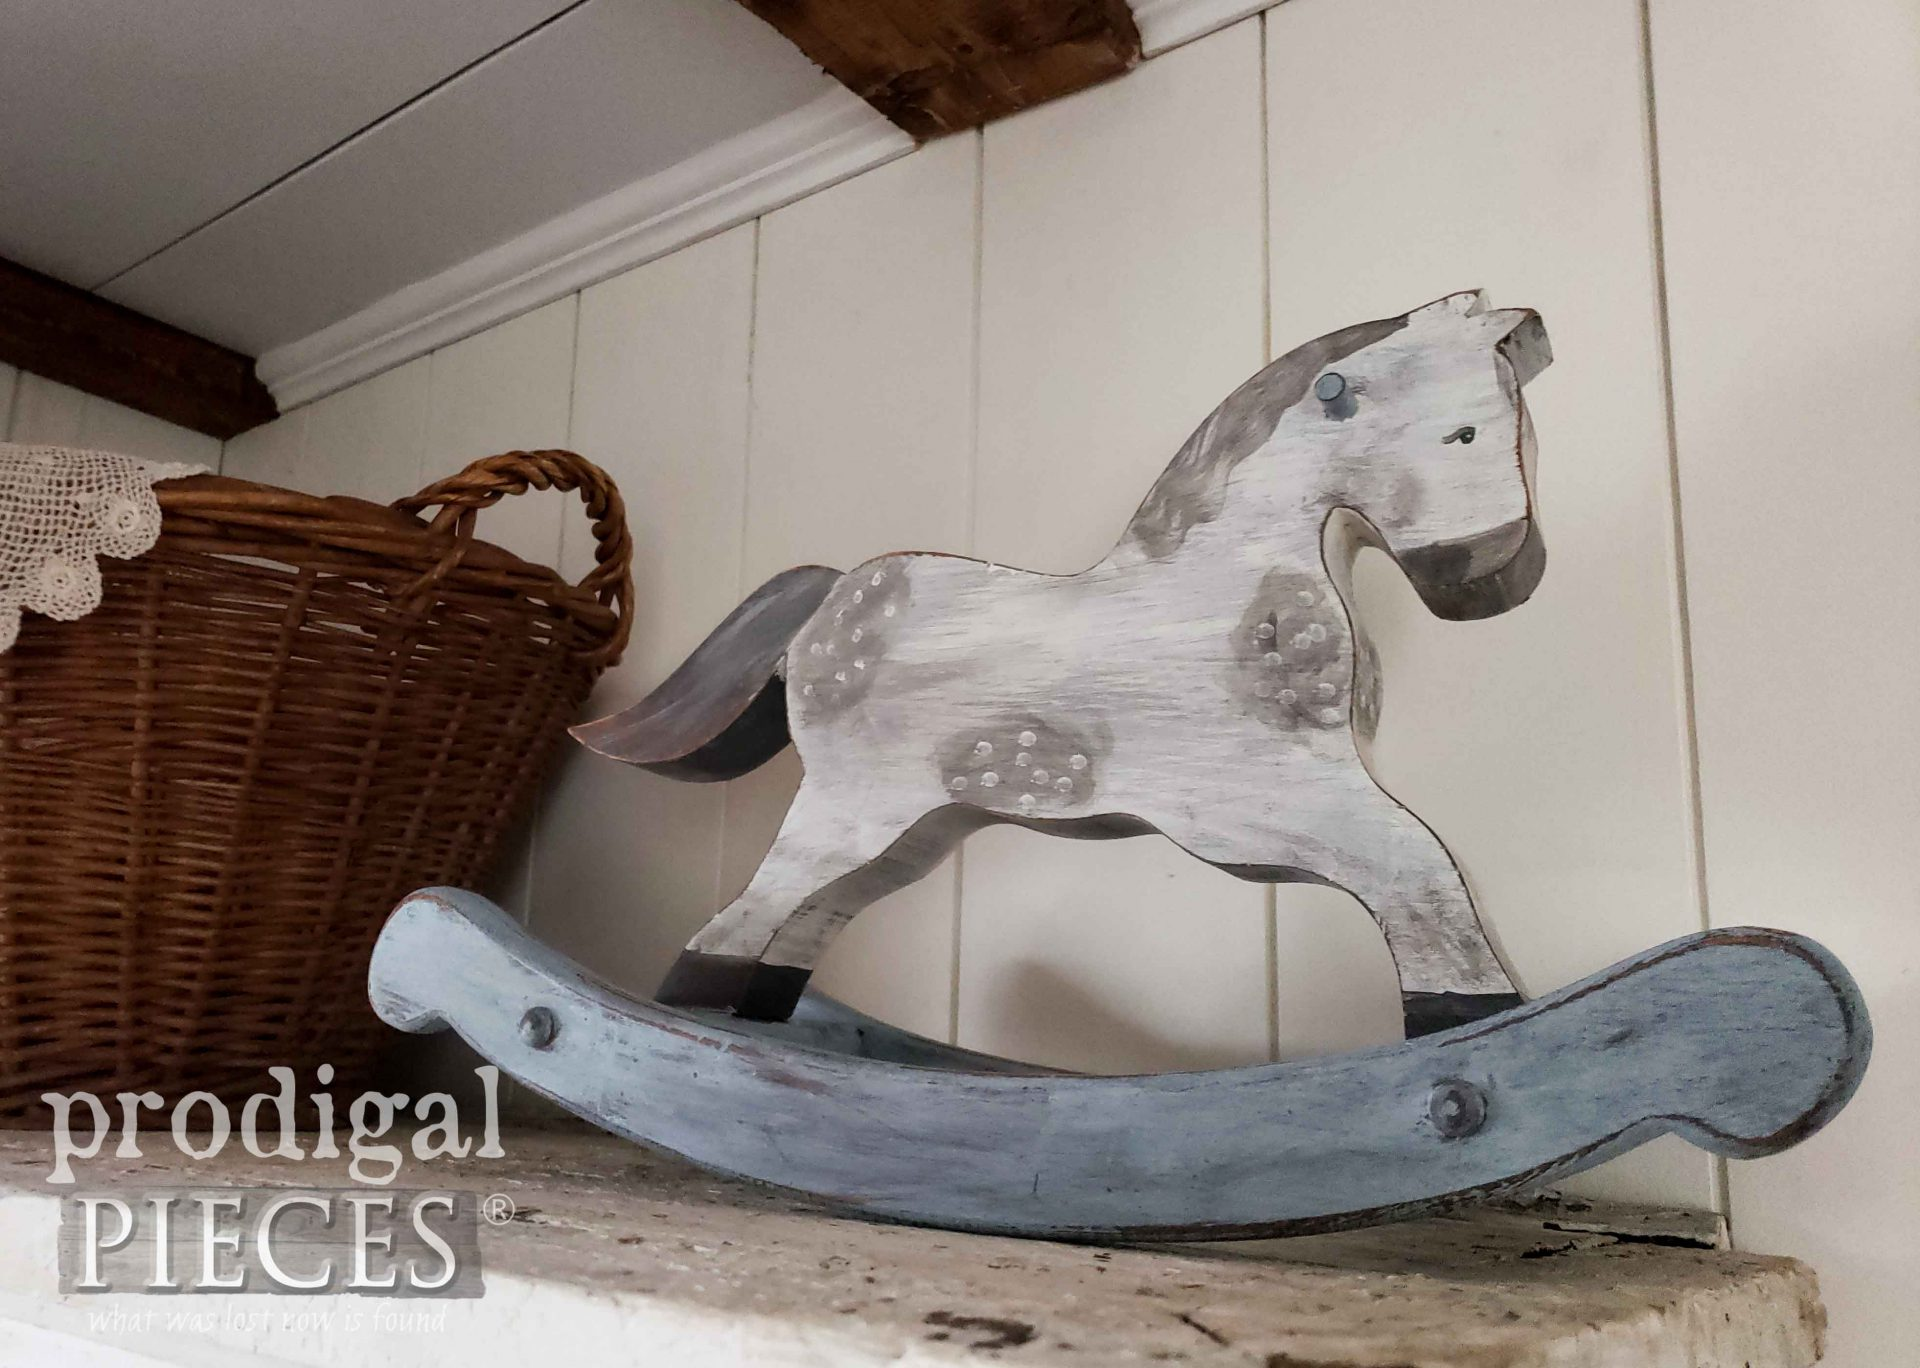 Dappled Gray Rocking Horse by Larissa of Prodigal Pieces | prodigalpieces.com #prodigalpieces #farmhouse #horse #toy